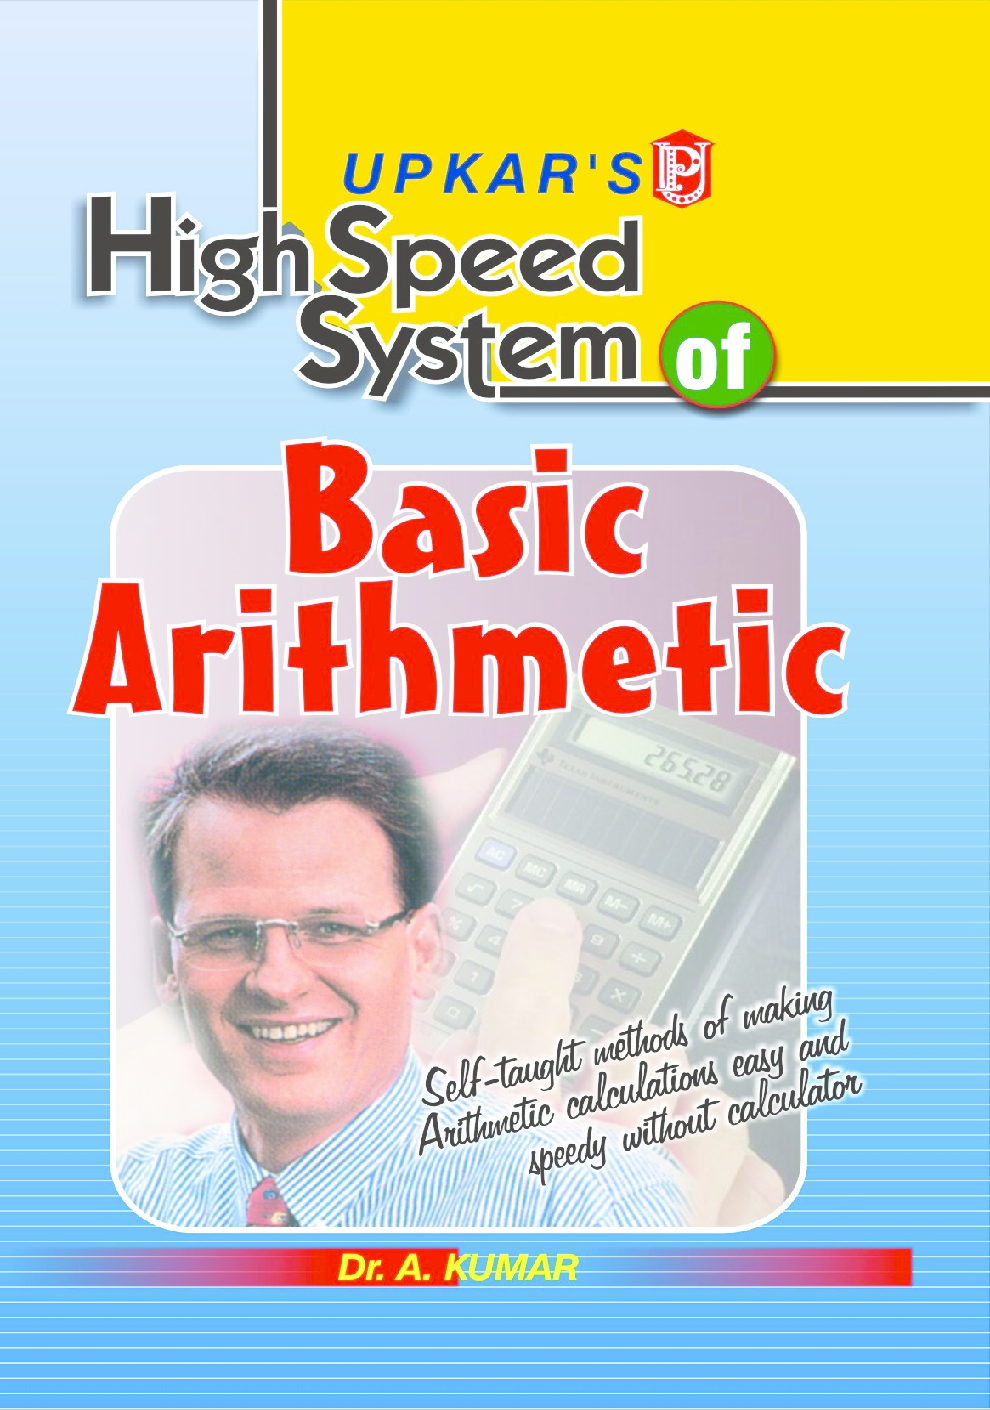 High Speed System of Basic Arithmetic - Page 1